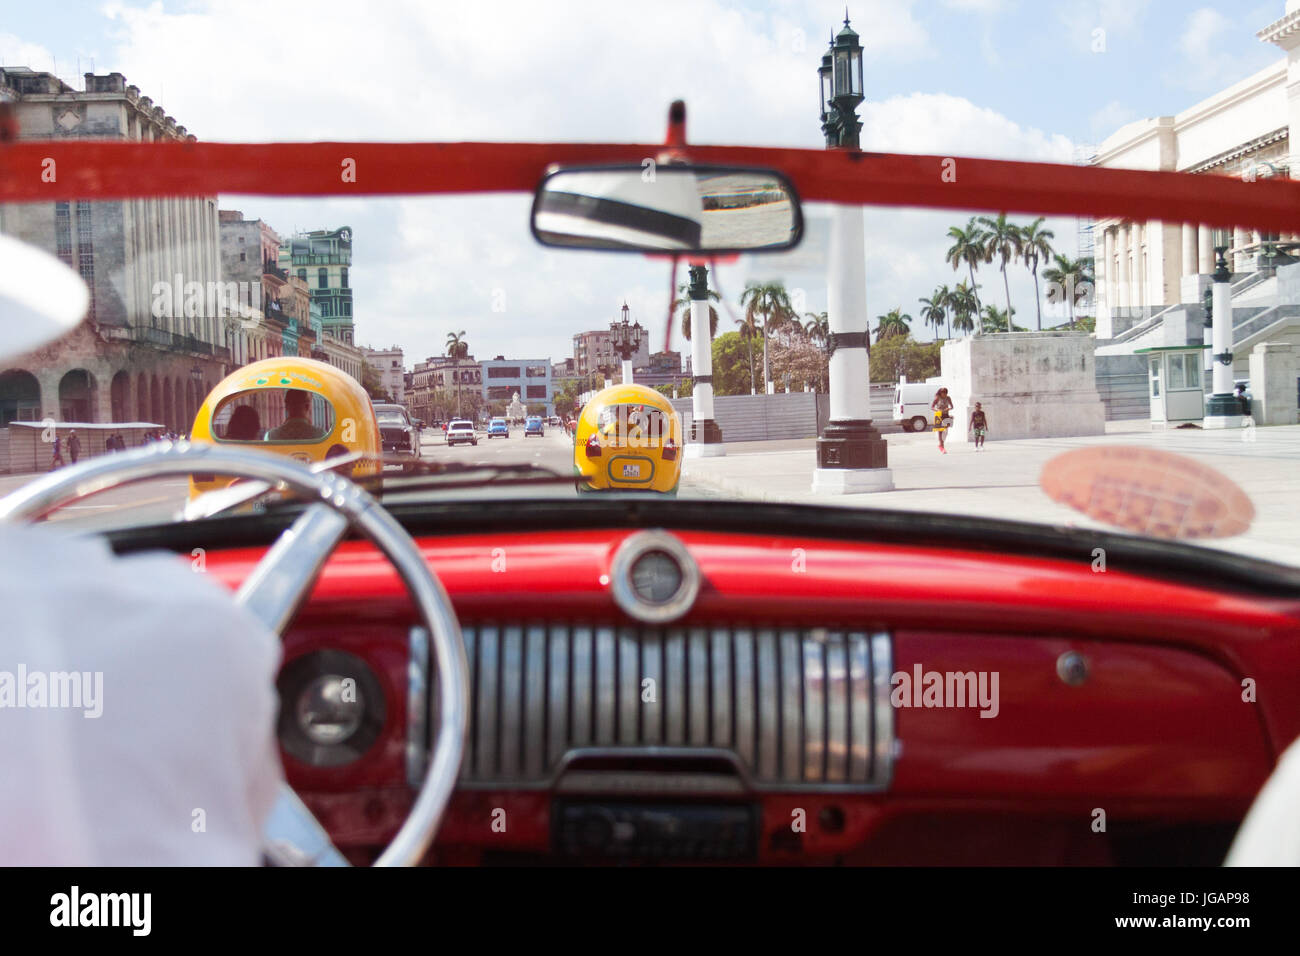 Ride inside old American classic car in Havana, Cuba Stock Photo ...